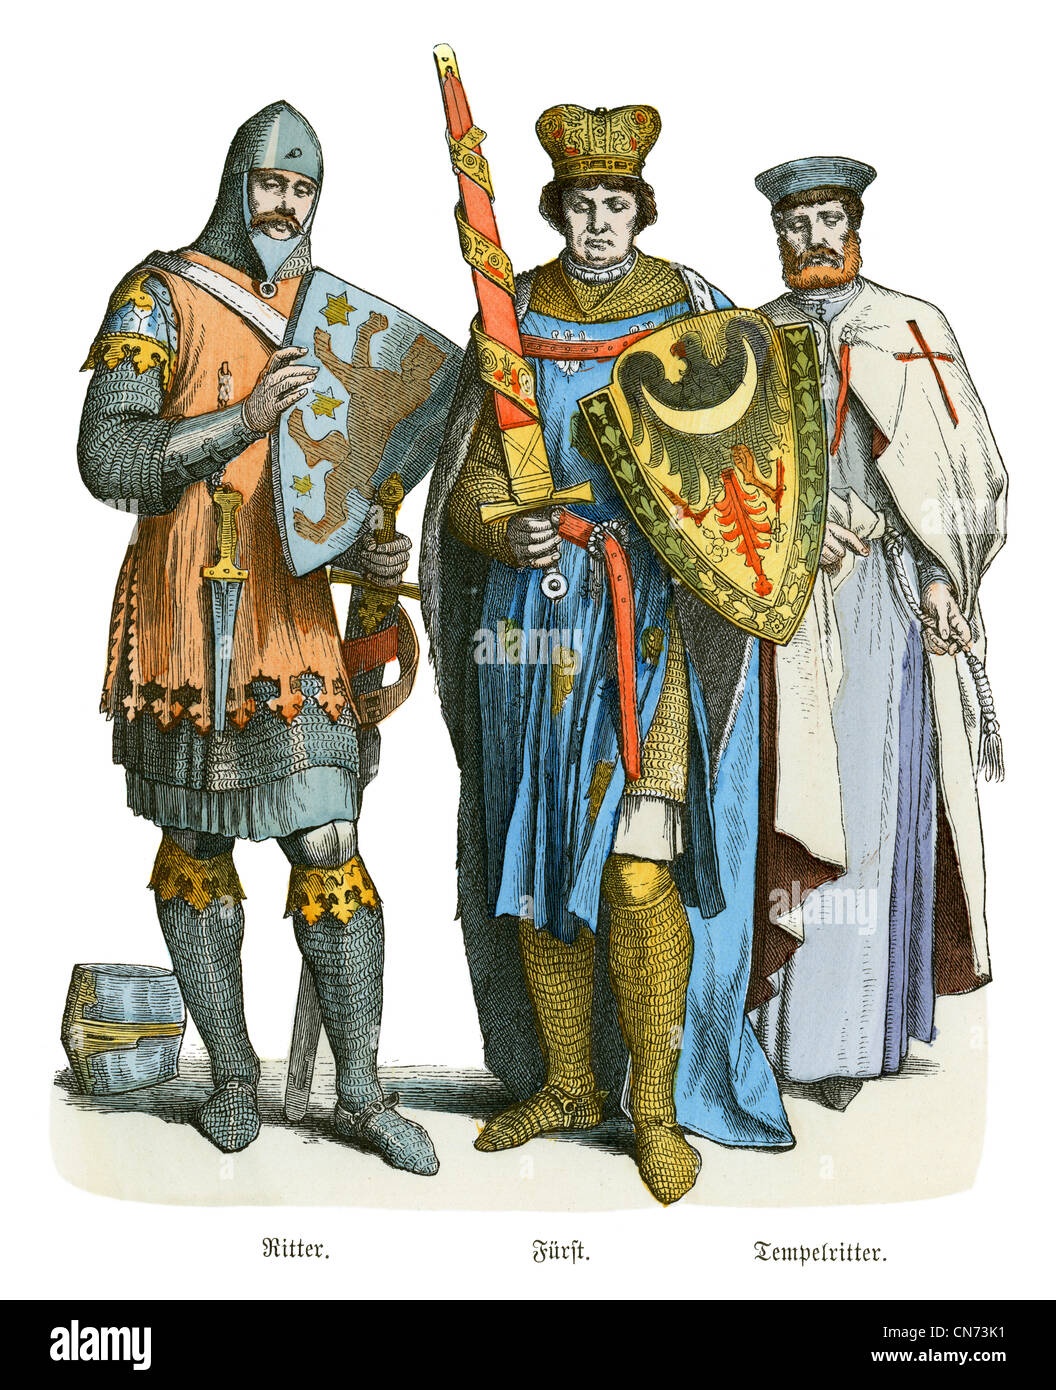 A Knight, Prince and Templar from the 13th Century - Stock Image